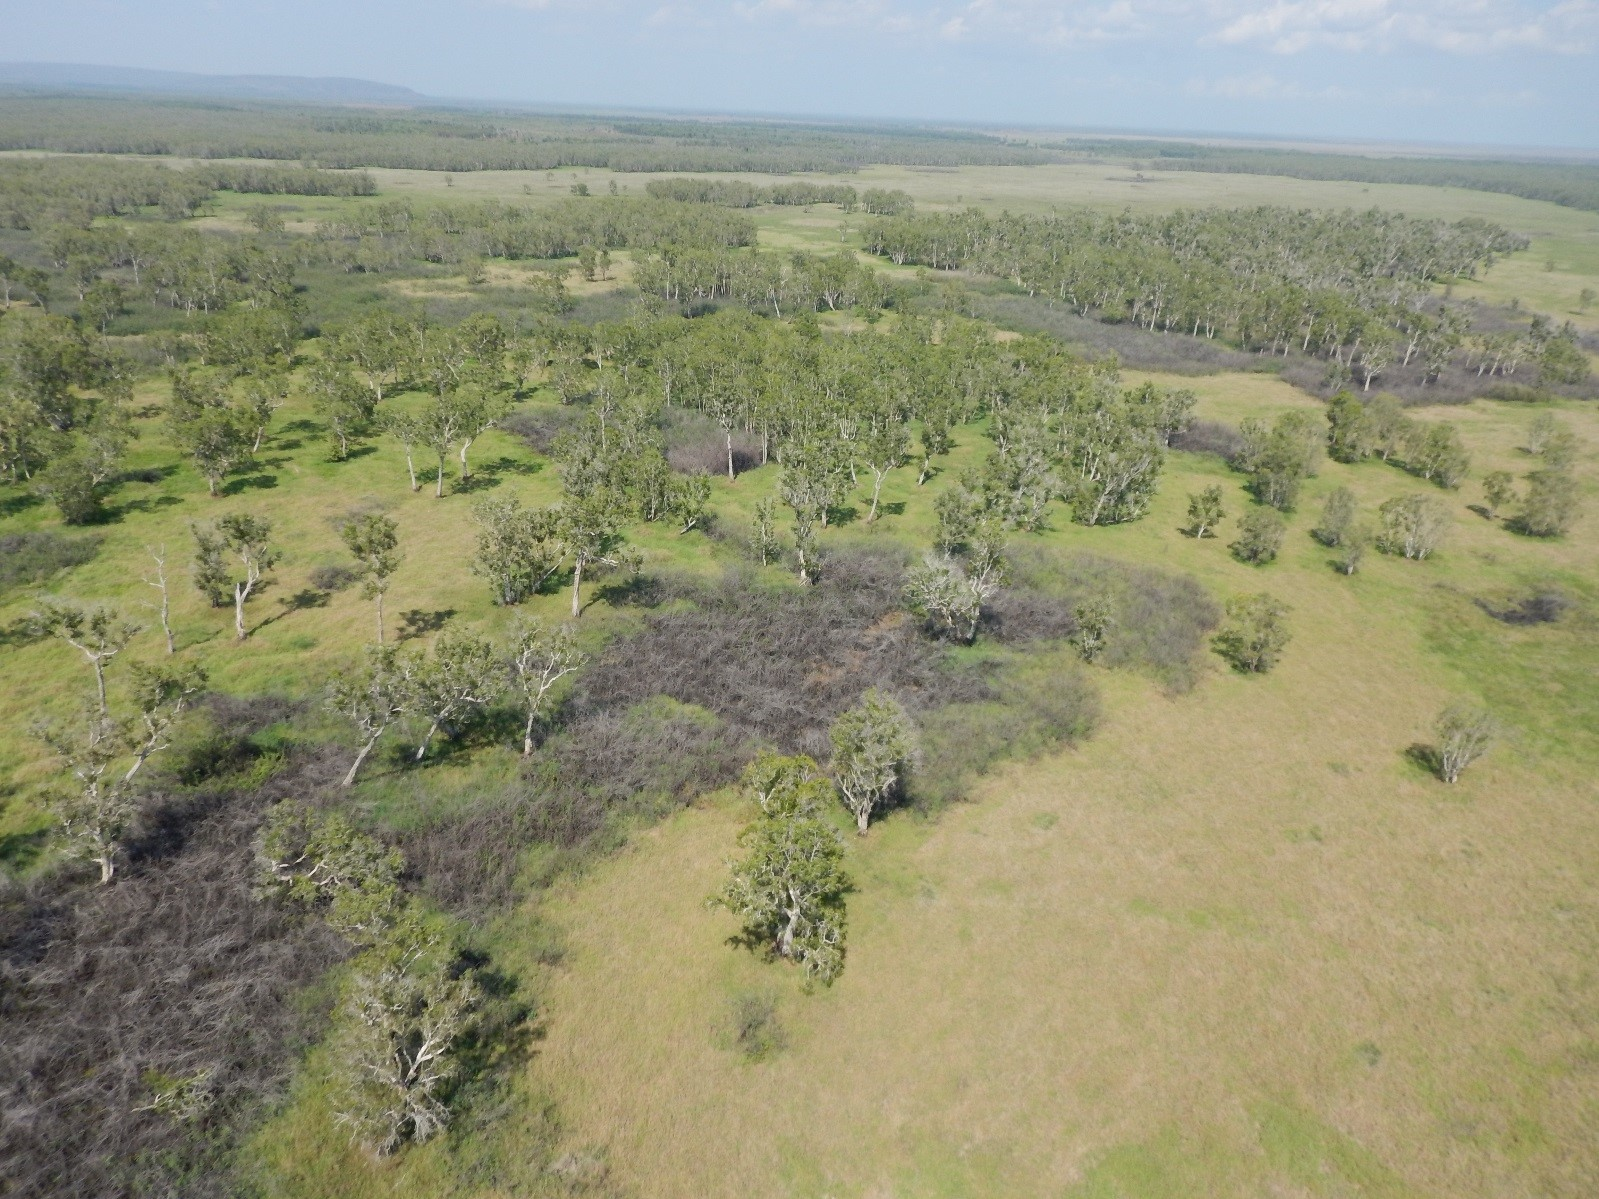 An aerial view of the Finniss area floodplains, one year after spraying for Mimosa pigra